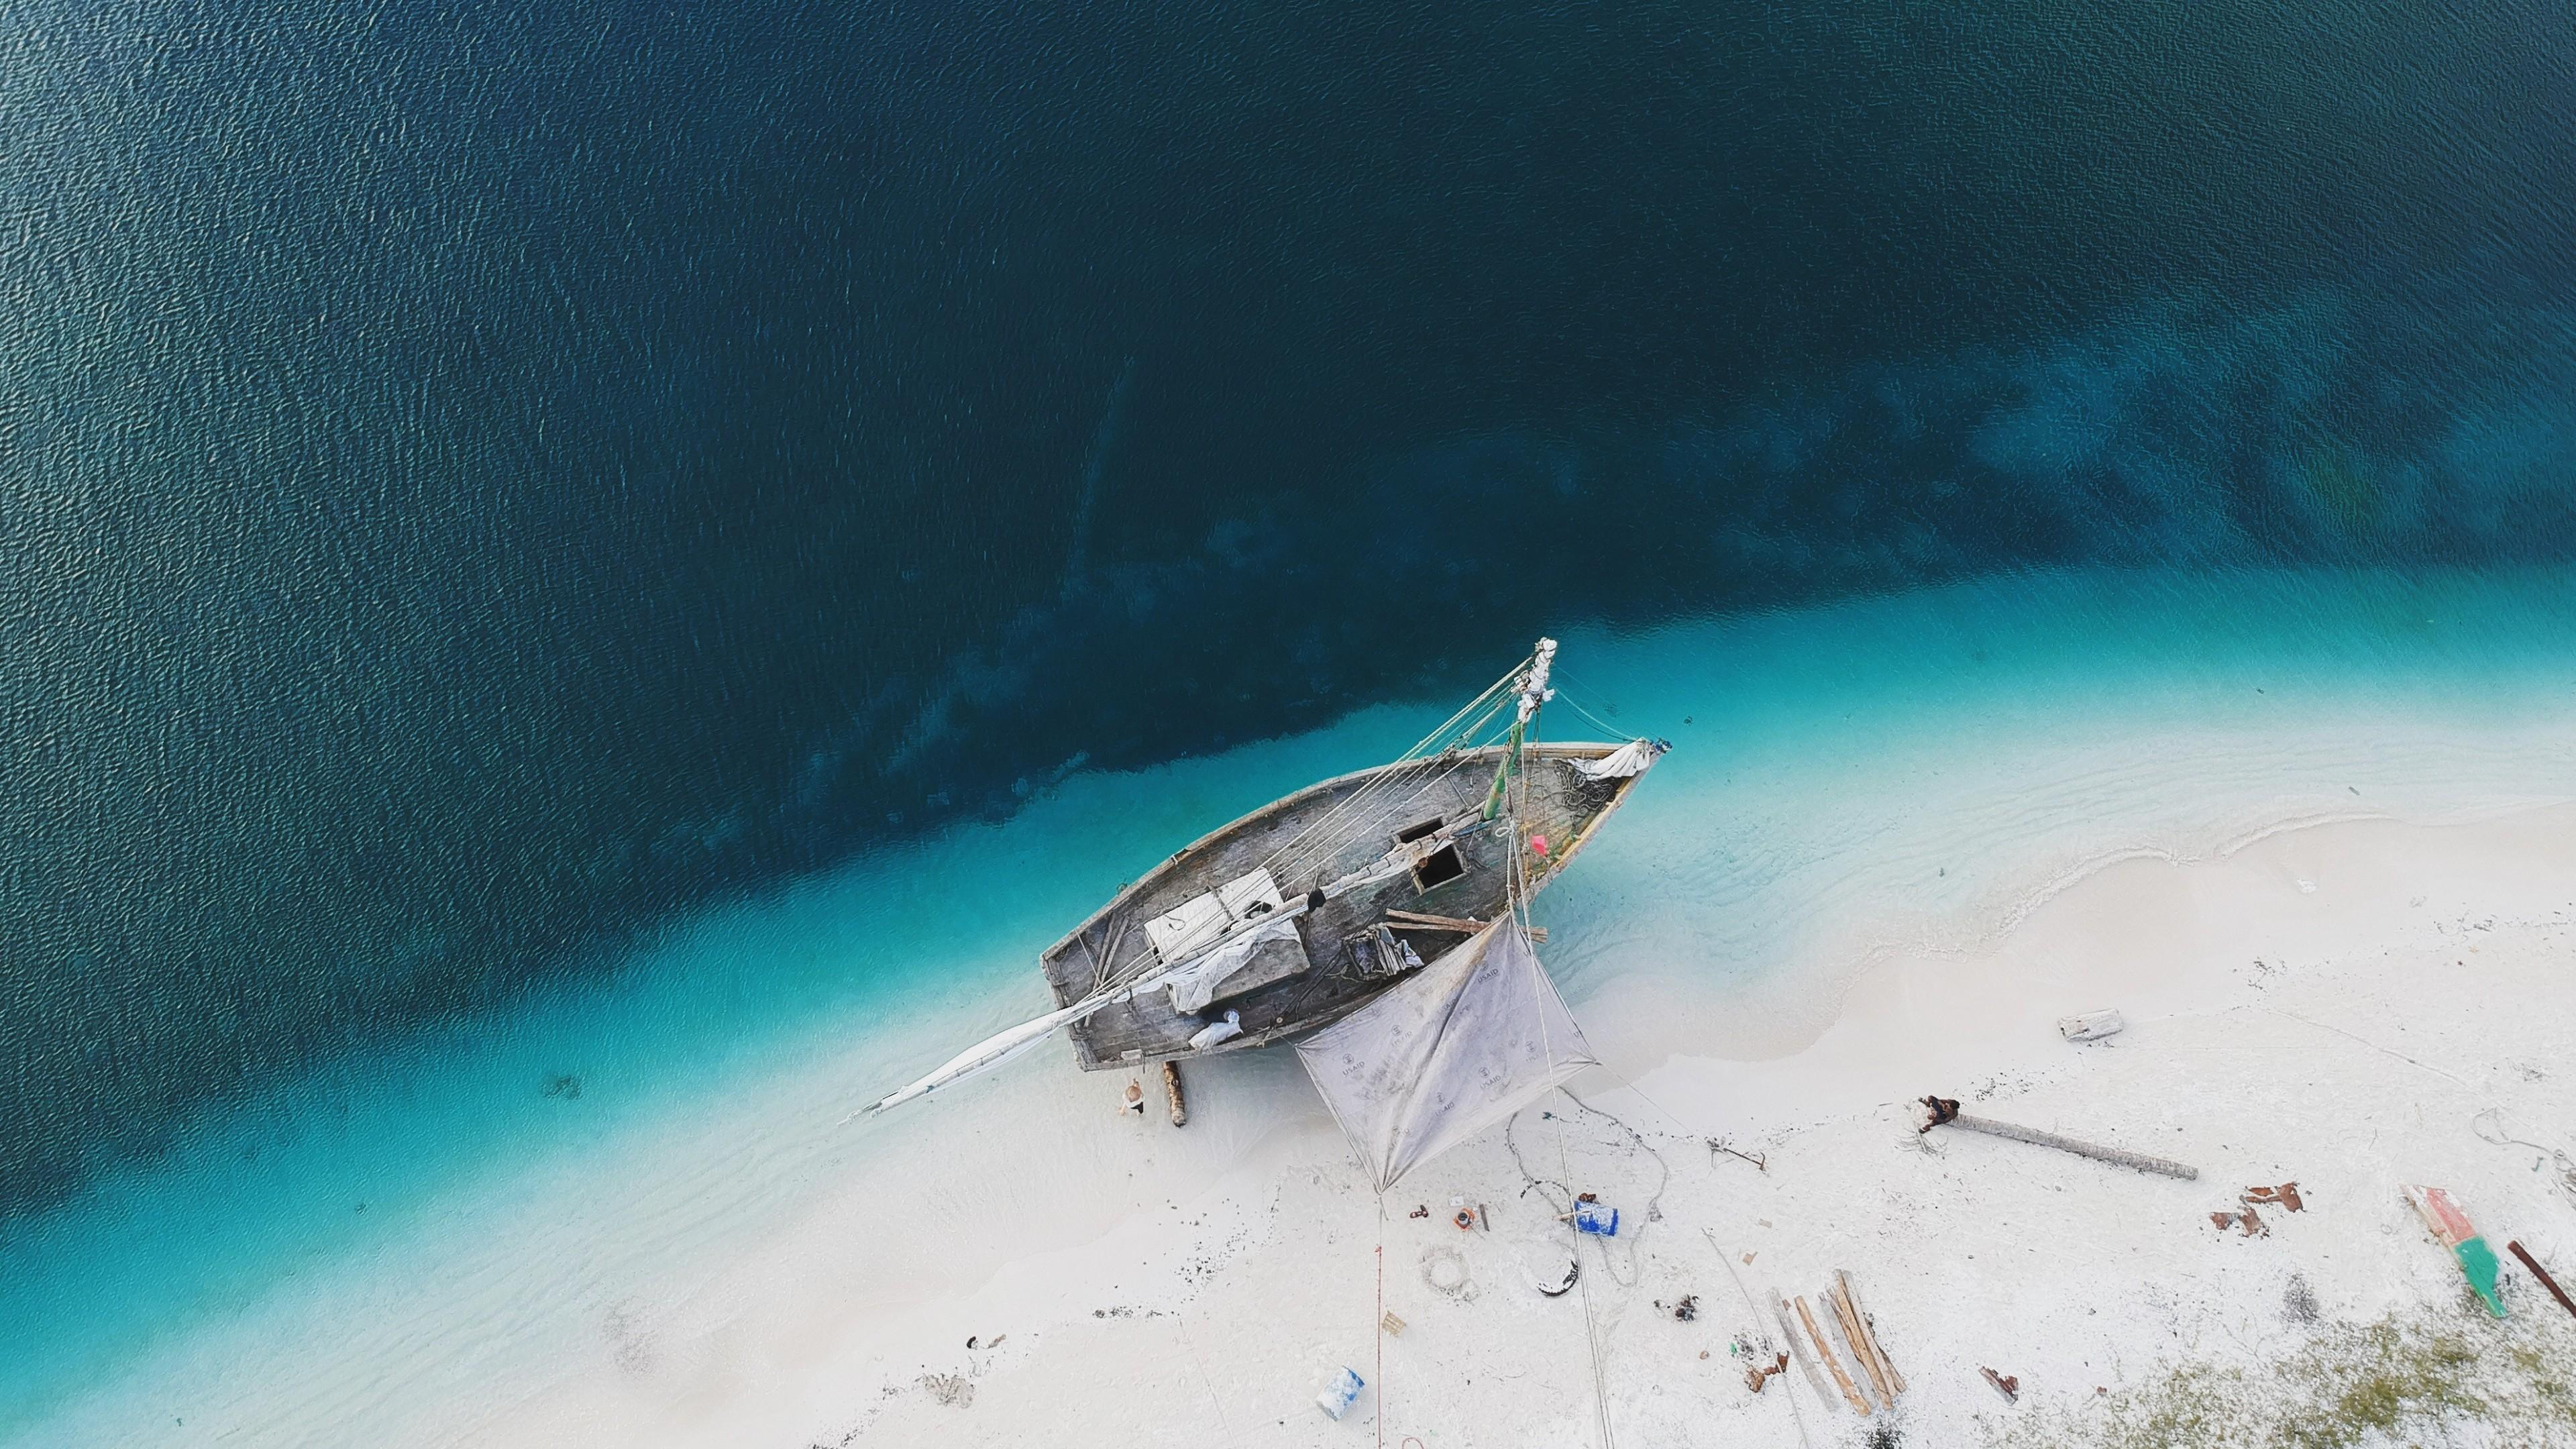 Uninhabited island shipwreck - Aerial photography wallpaper